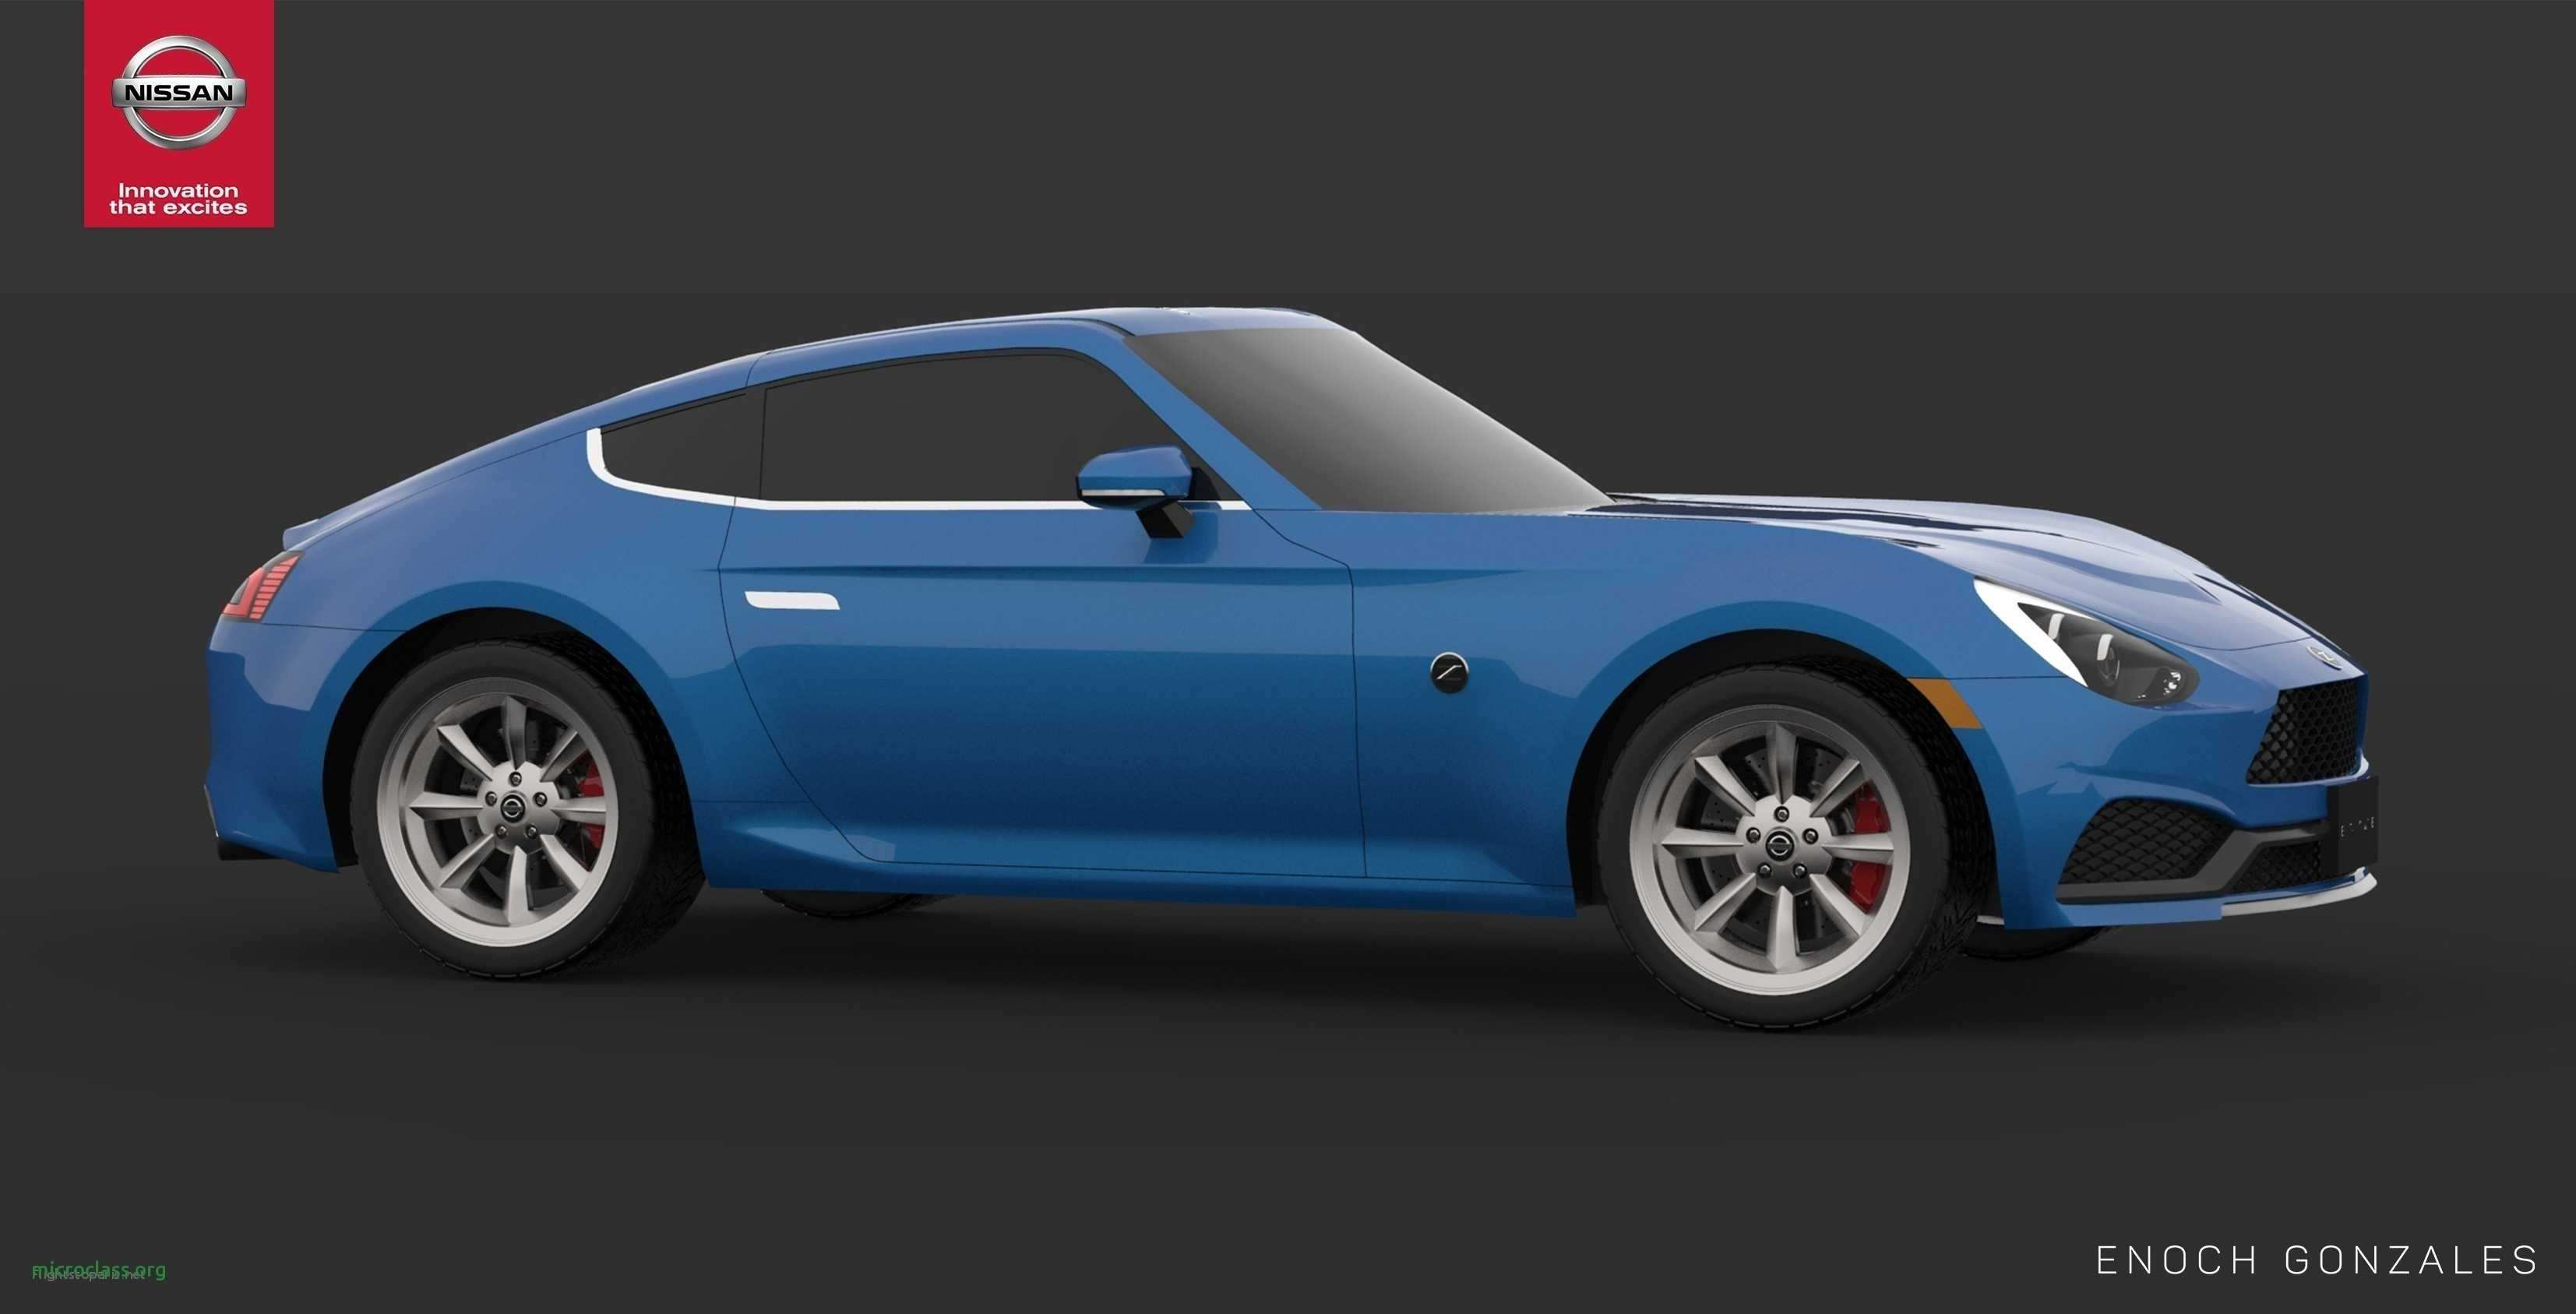 66 Concept of Z35 Nissan Spesification with Z35 Nissan